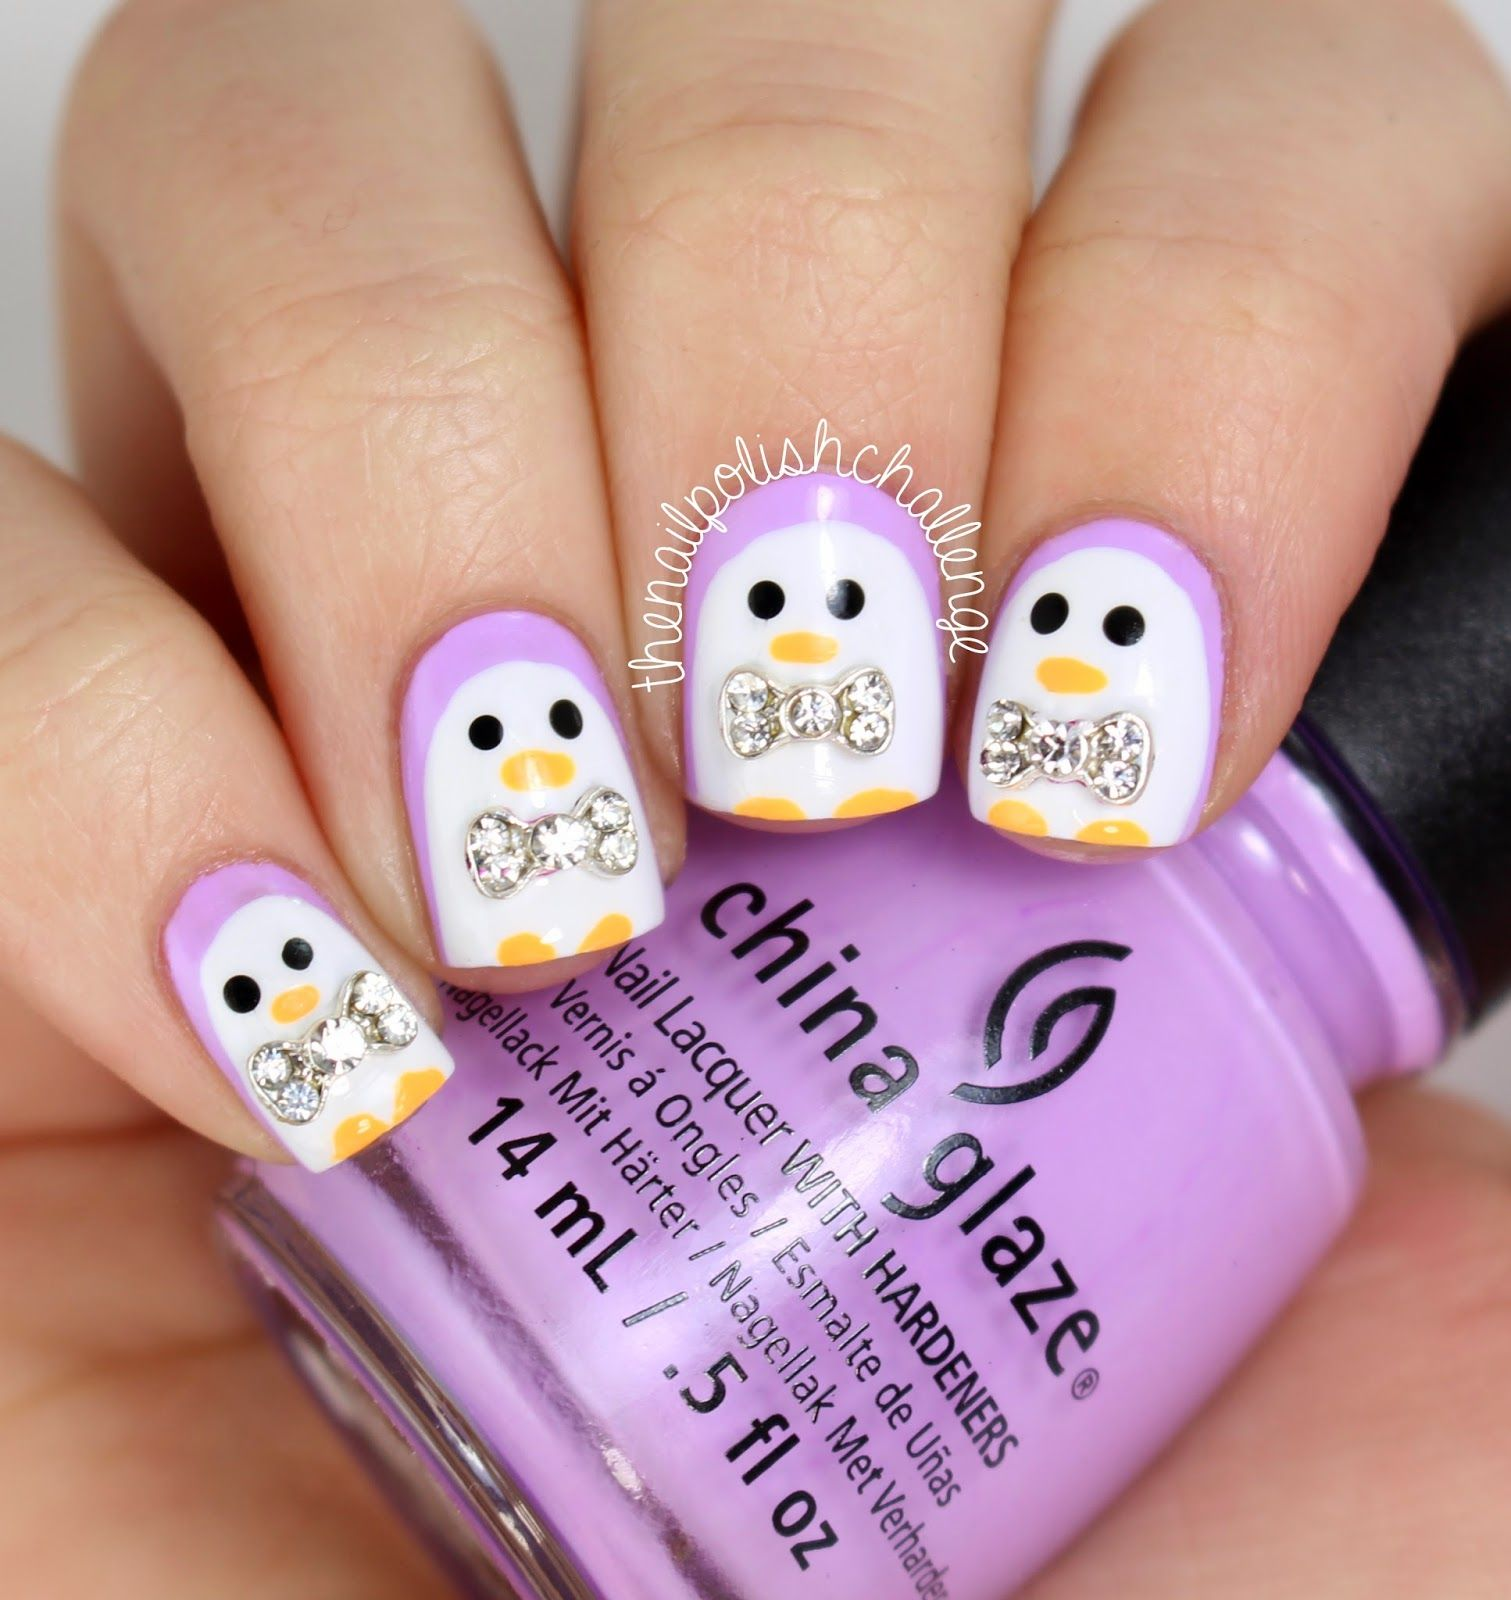 The cutest animal nail art 2014 penguin nail art penguin nails cute penguin nail art with 3d bows the nail polish challenge prinsesfo Image collections